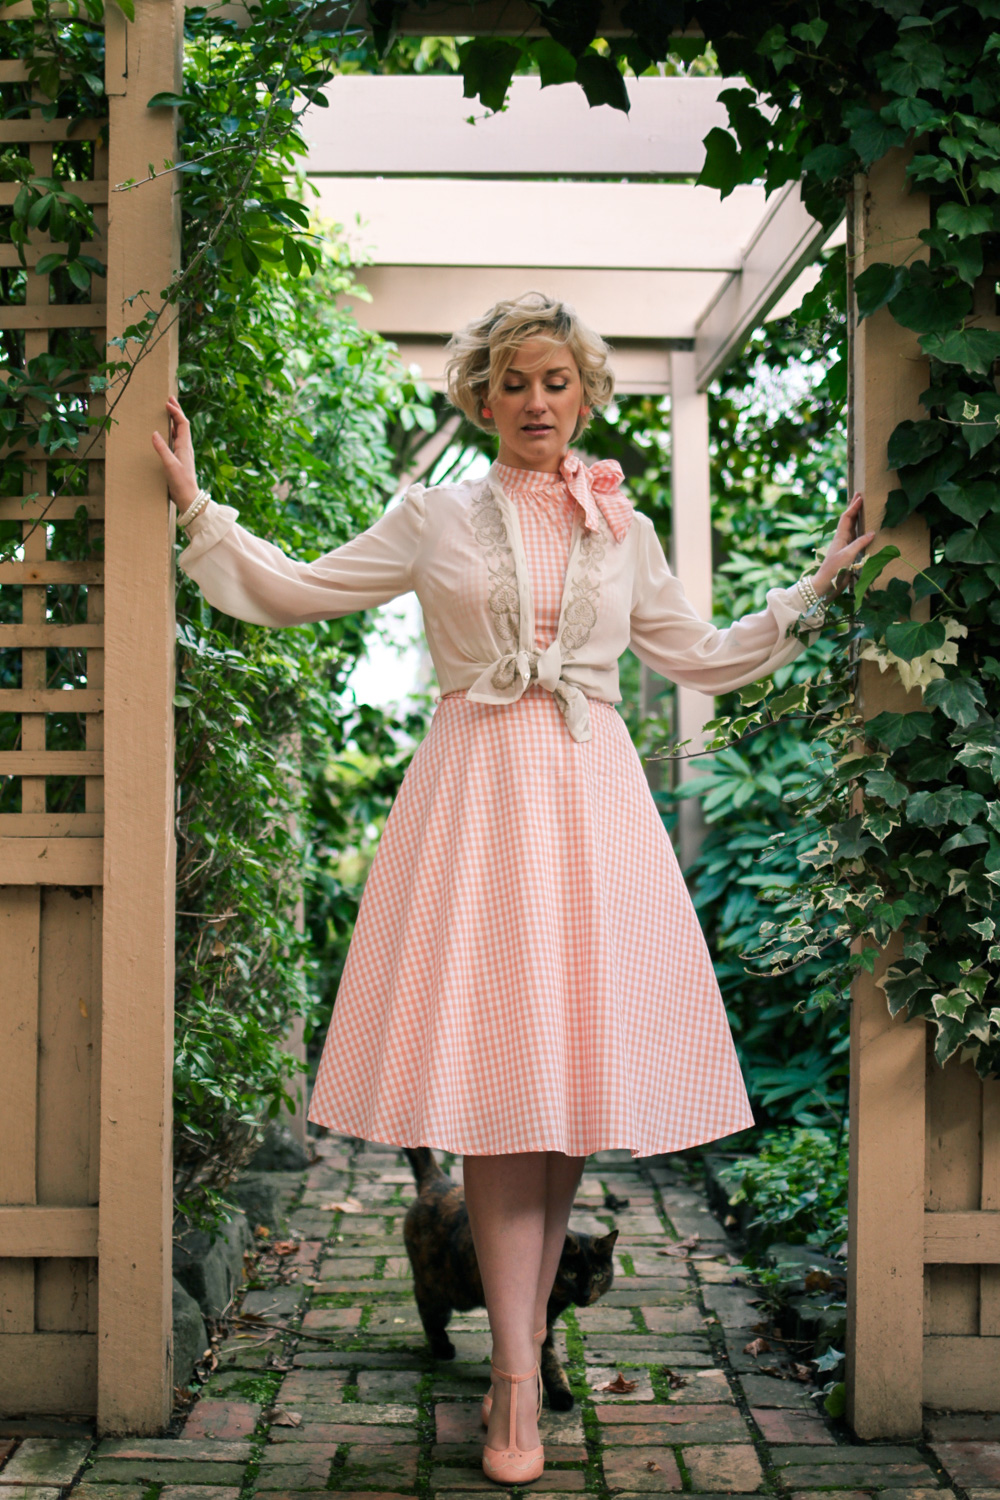 @findingfemme wears pink gingham Voodoo Vixen dress with Bettie Page t-bar heel and sheer blouse.